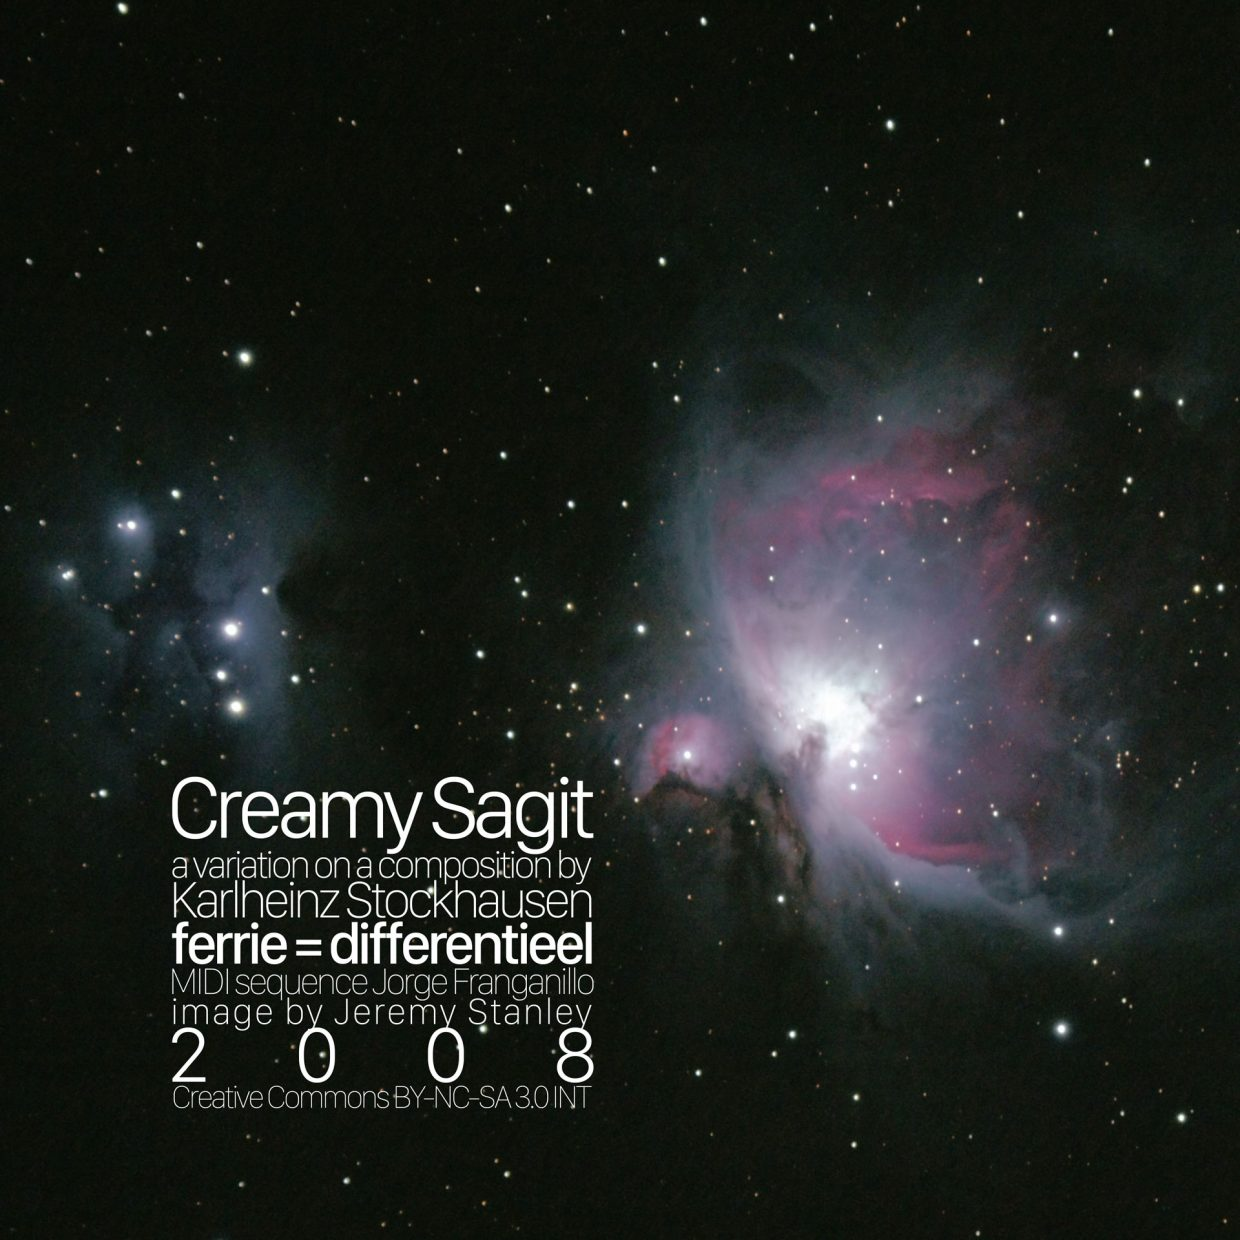 Creamy Sagit cover